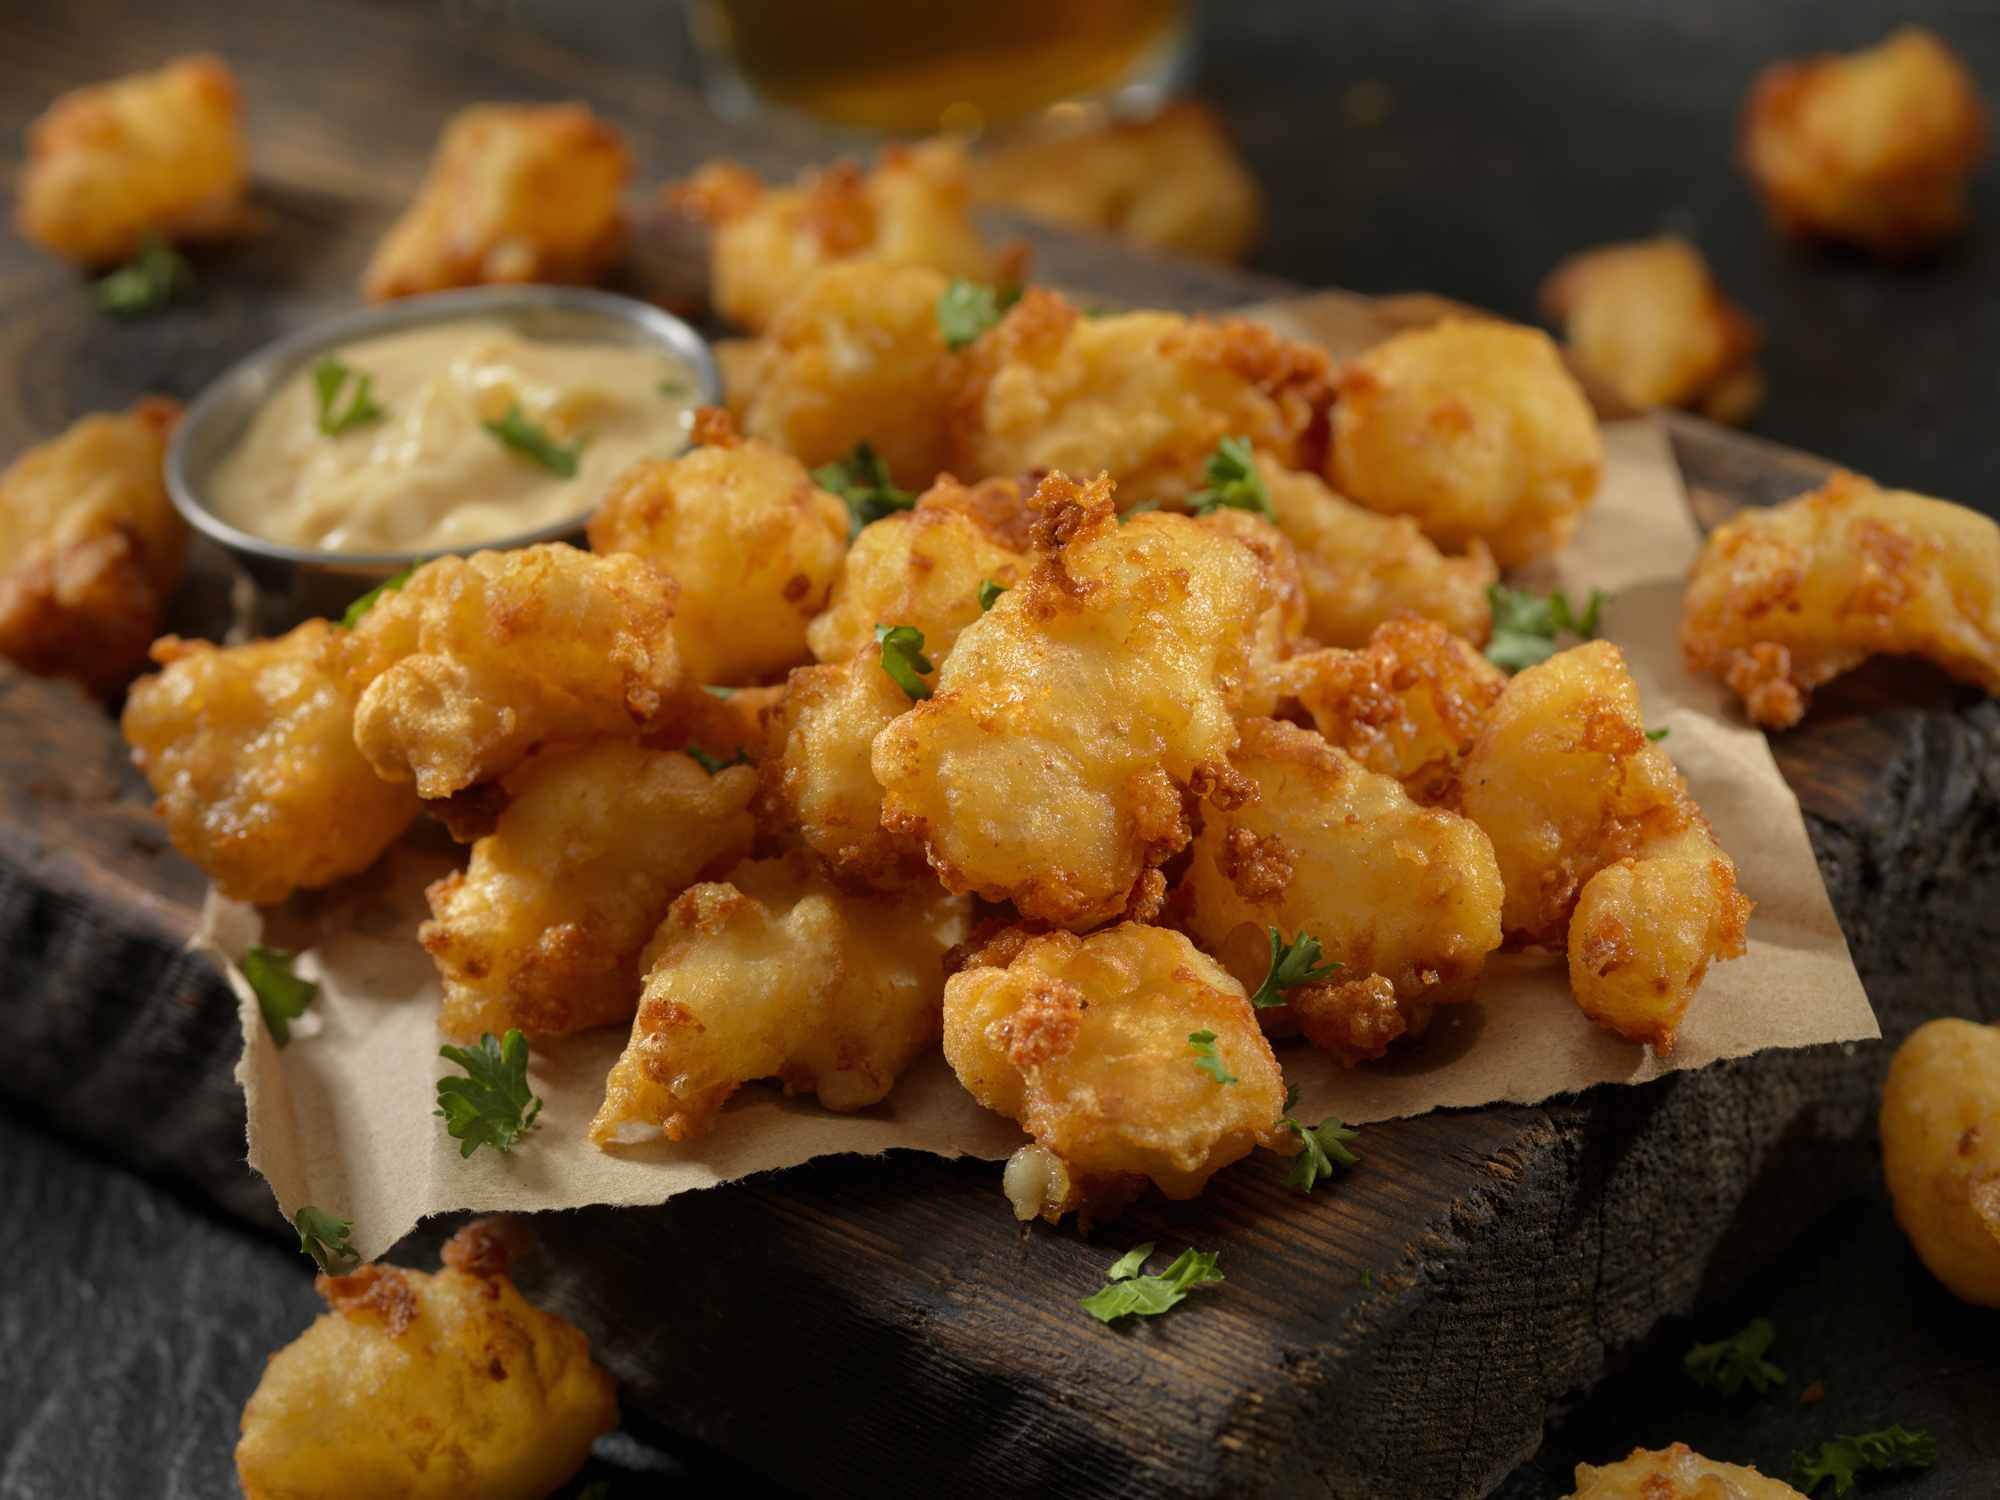 A plate of cheese curds with dipping sauce.